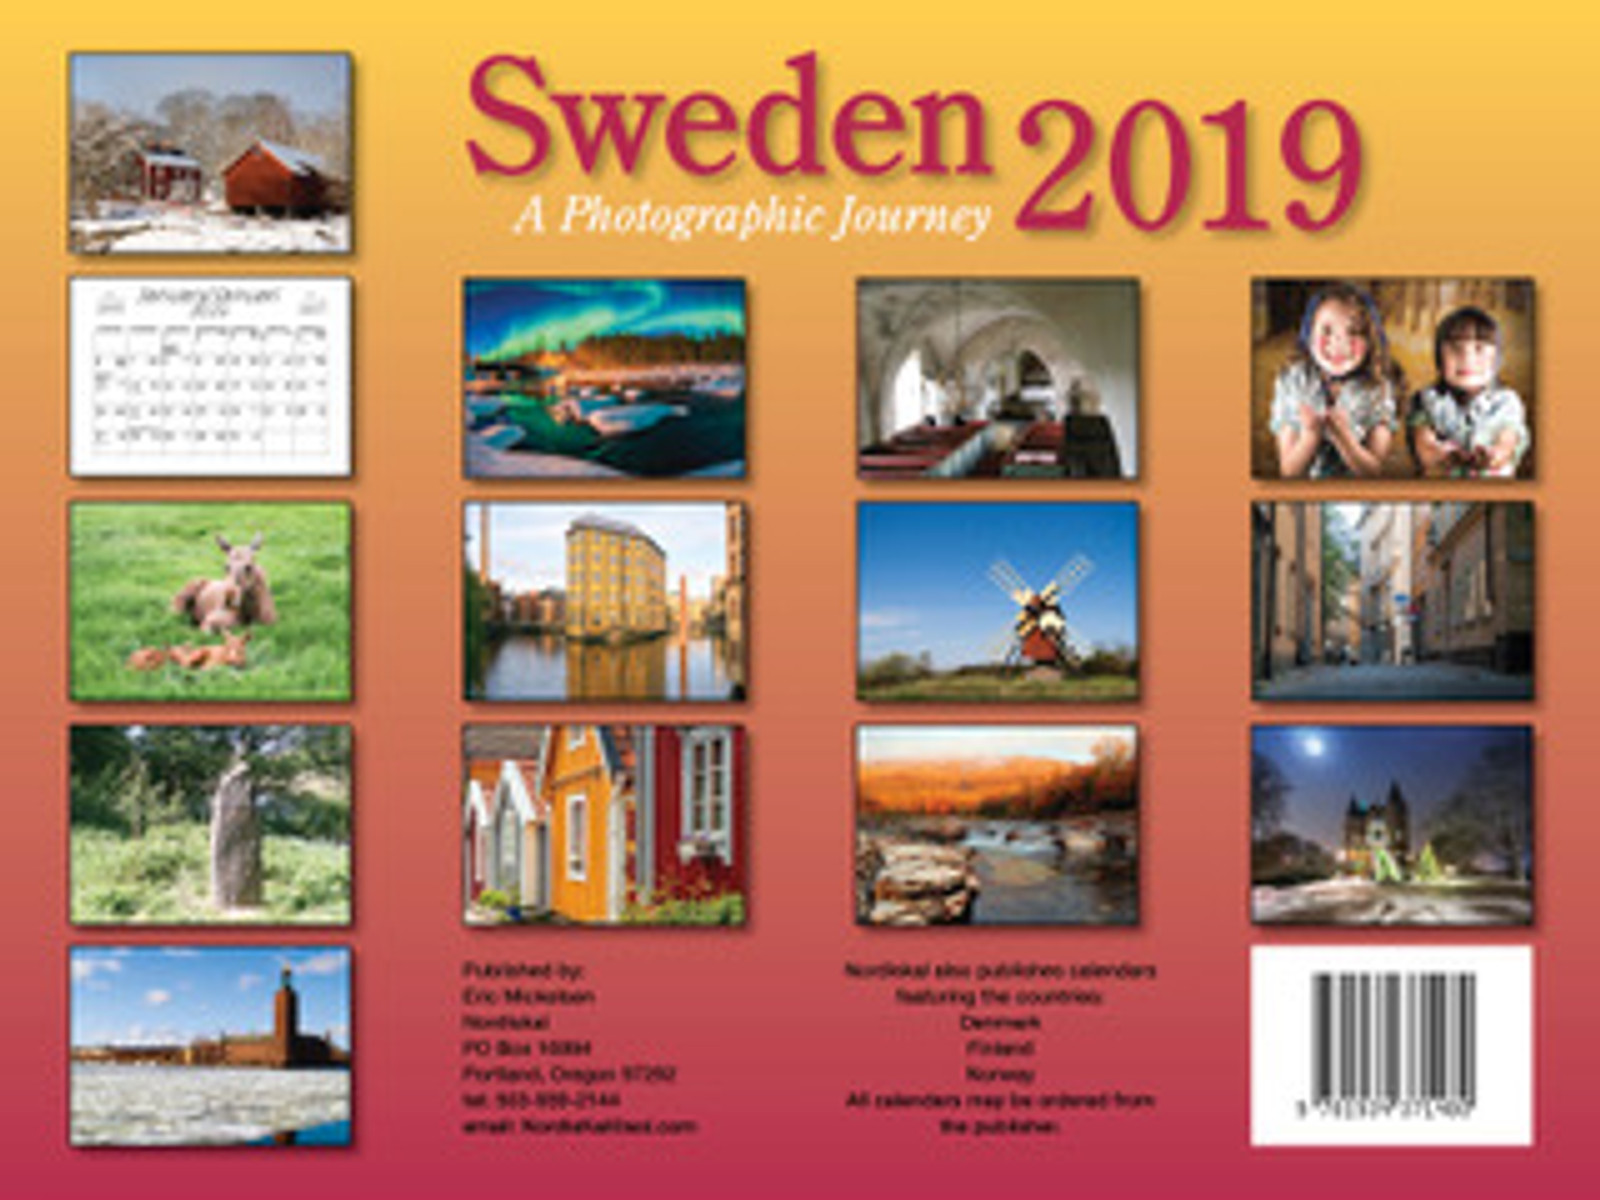 2019 Nordiskal Sweden Calendar in Photographs - Back Cover